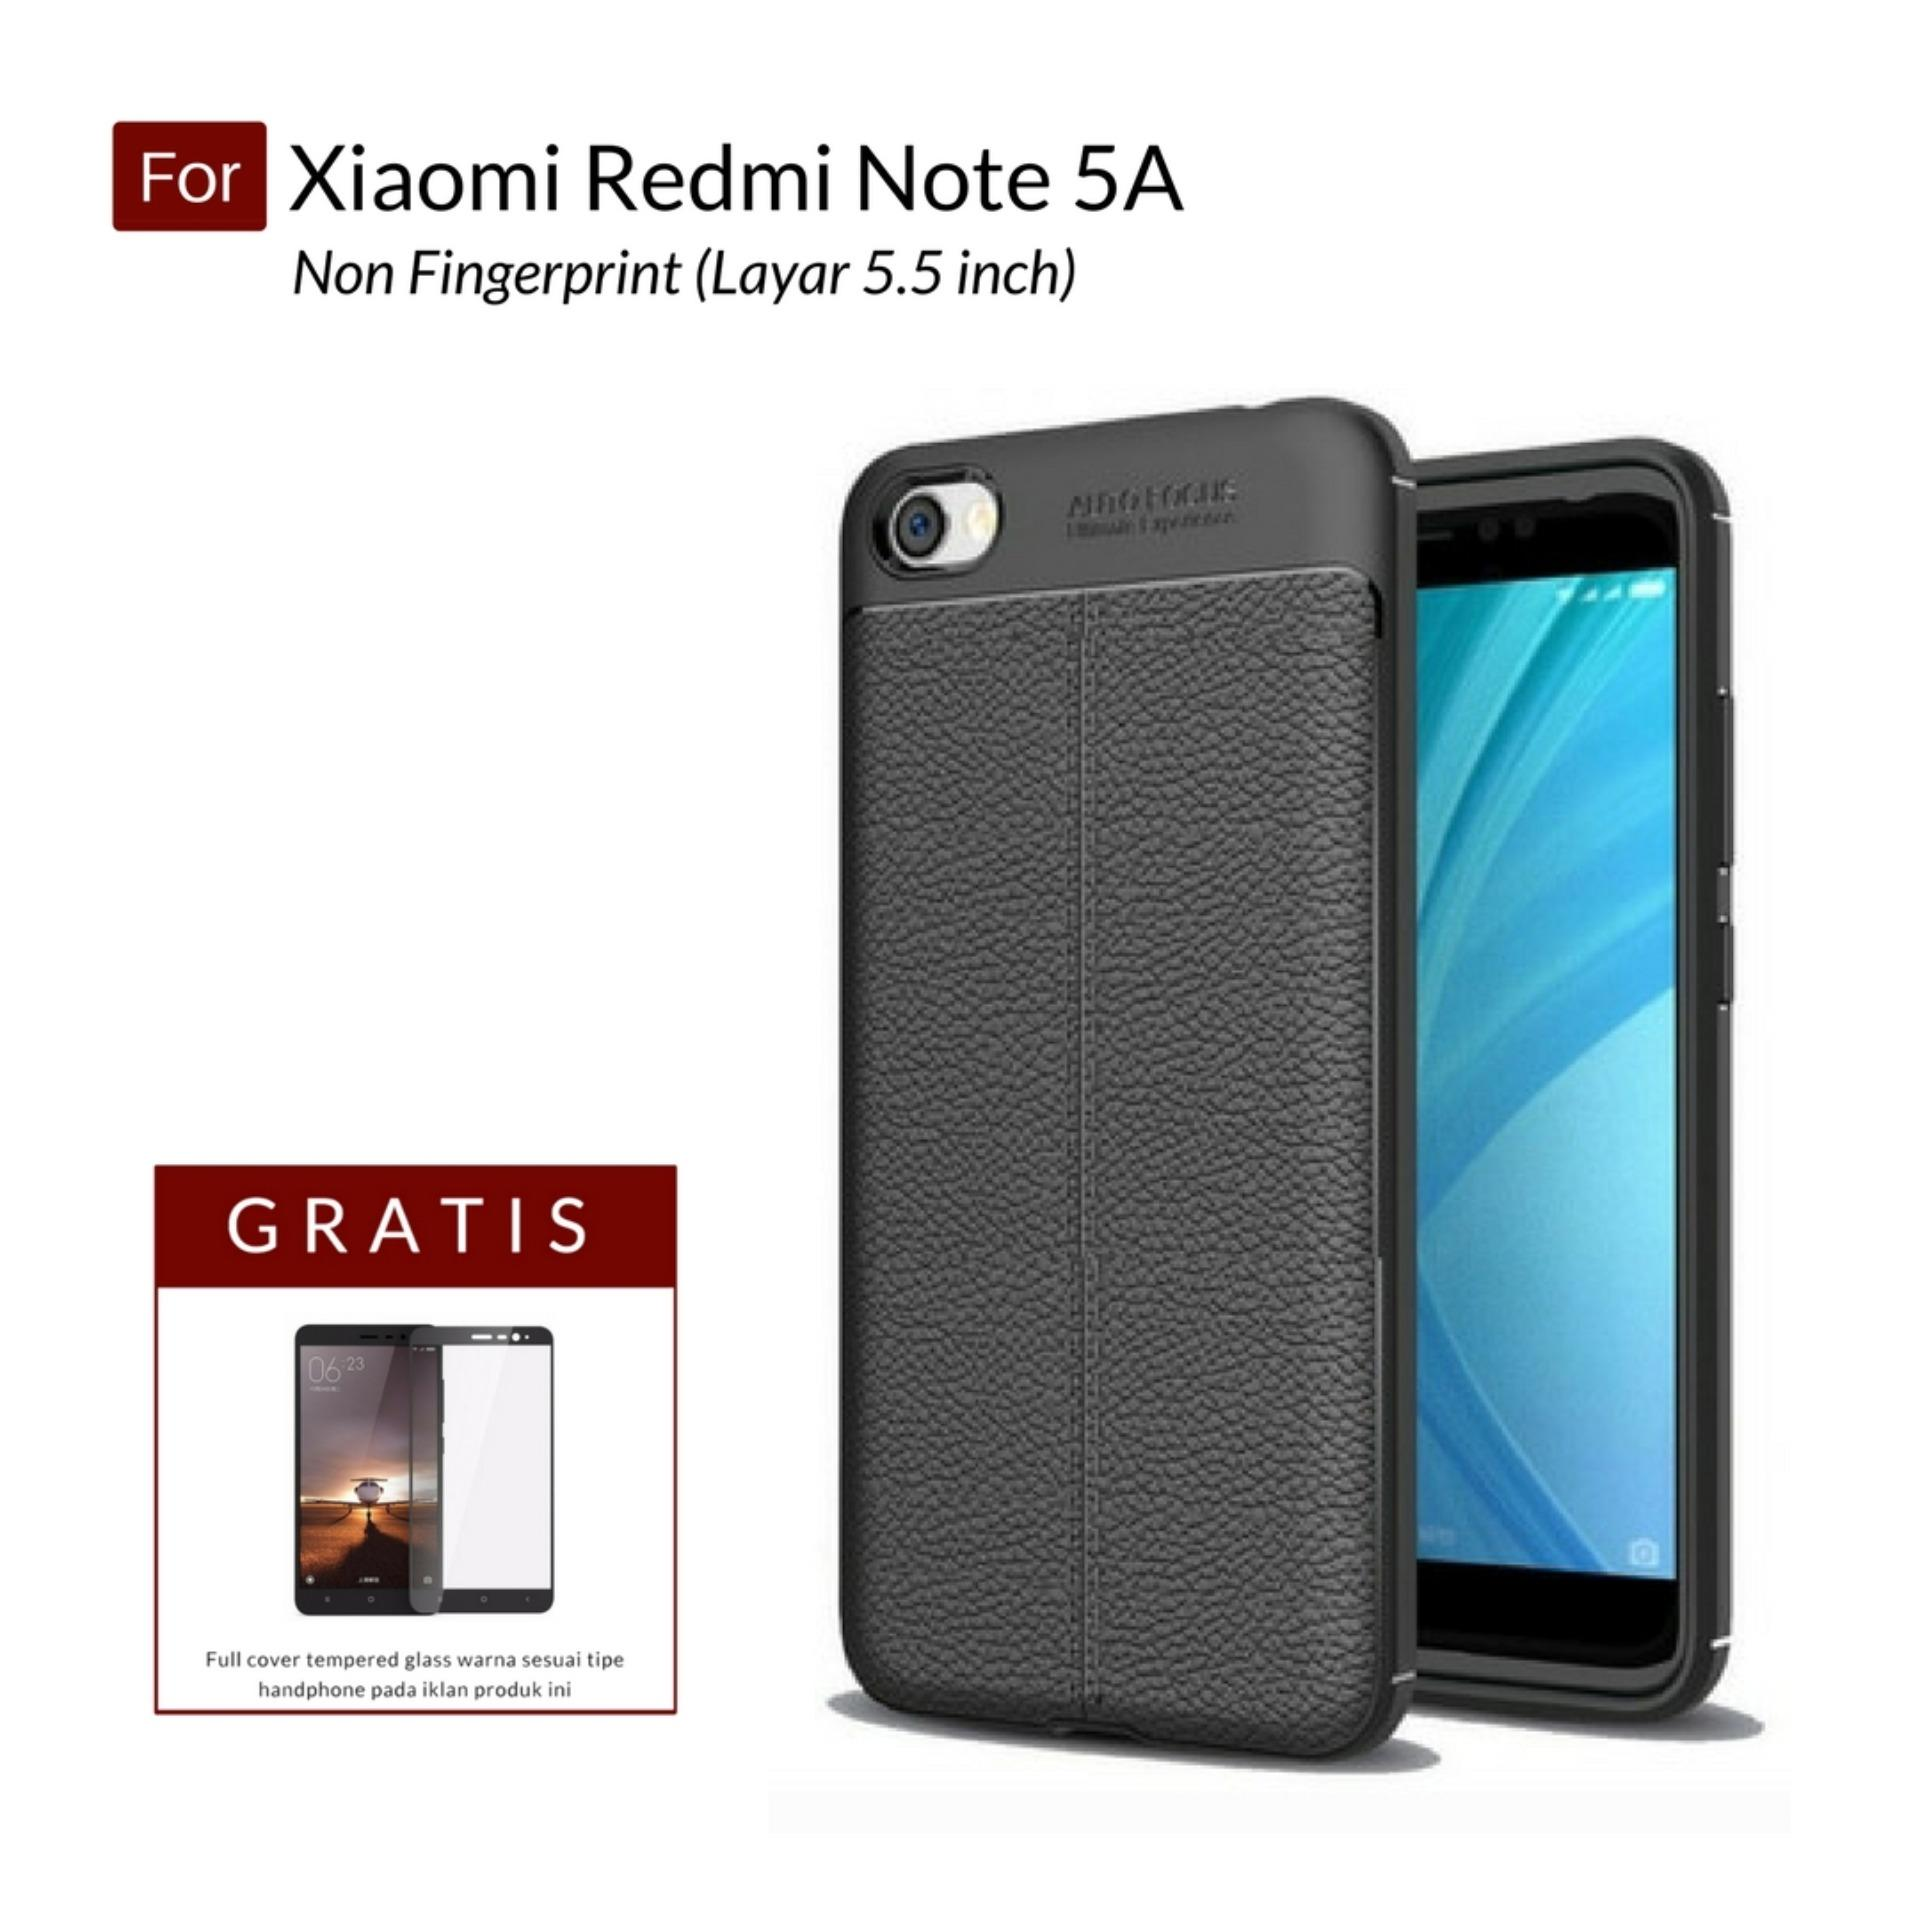 Cek Harga Baru Caselova Ultimate Experience Shockproof Premium Ume Tempered Glass Xiaomi Redmi Note 4 4x Accessories Hp Leather Case For 5a Y1 Lite Standard